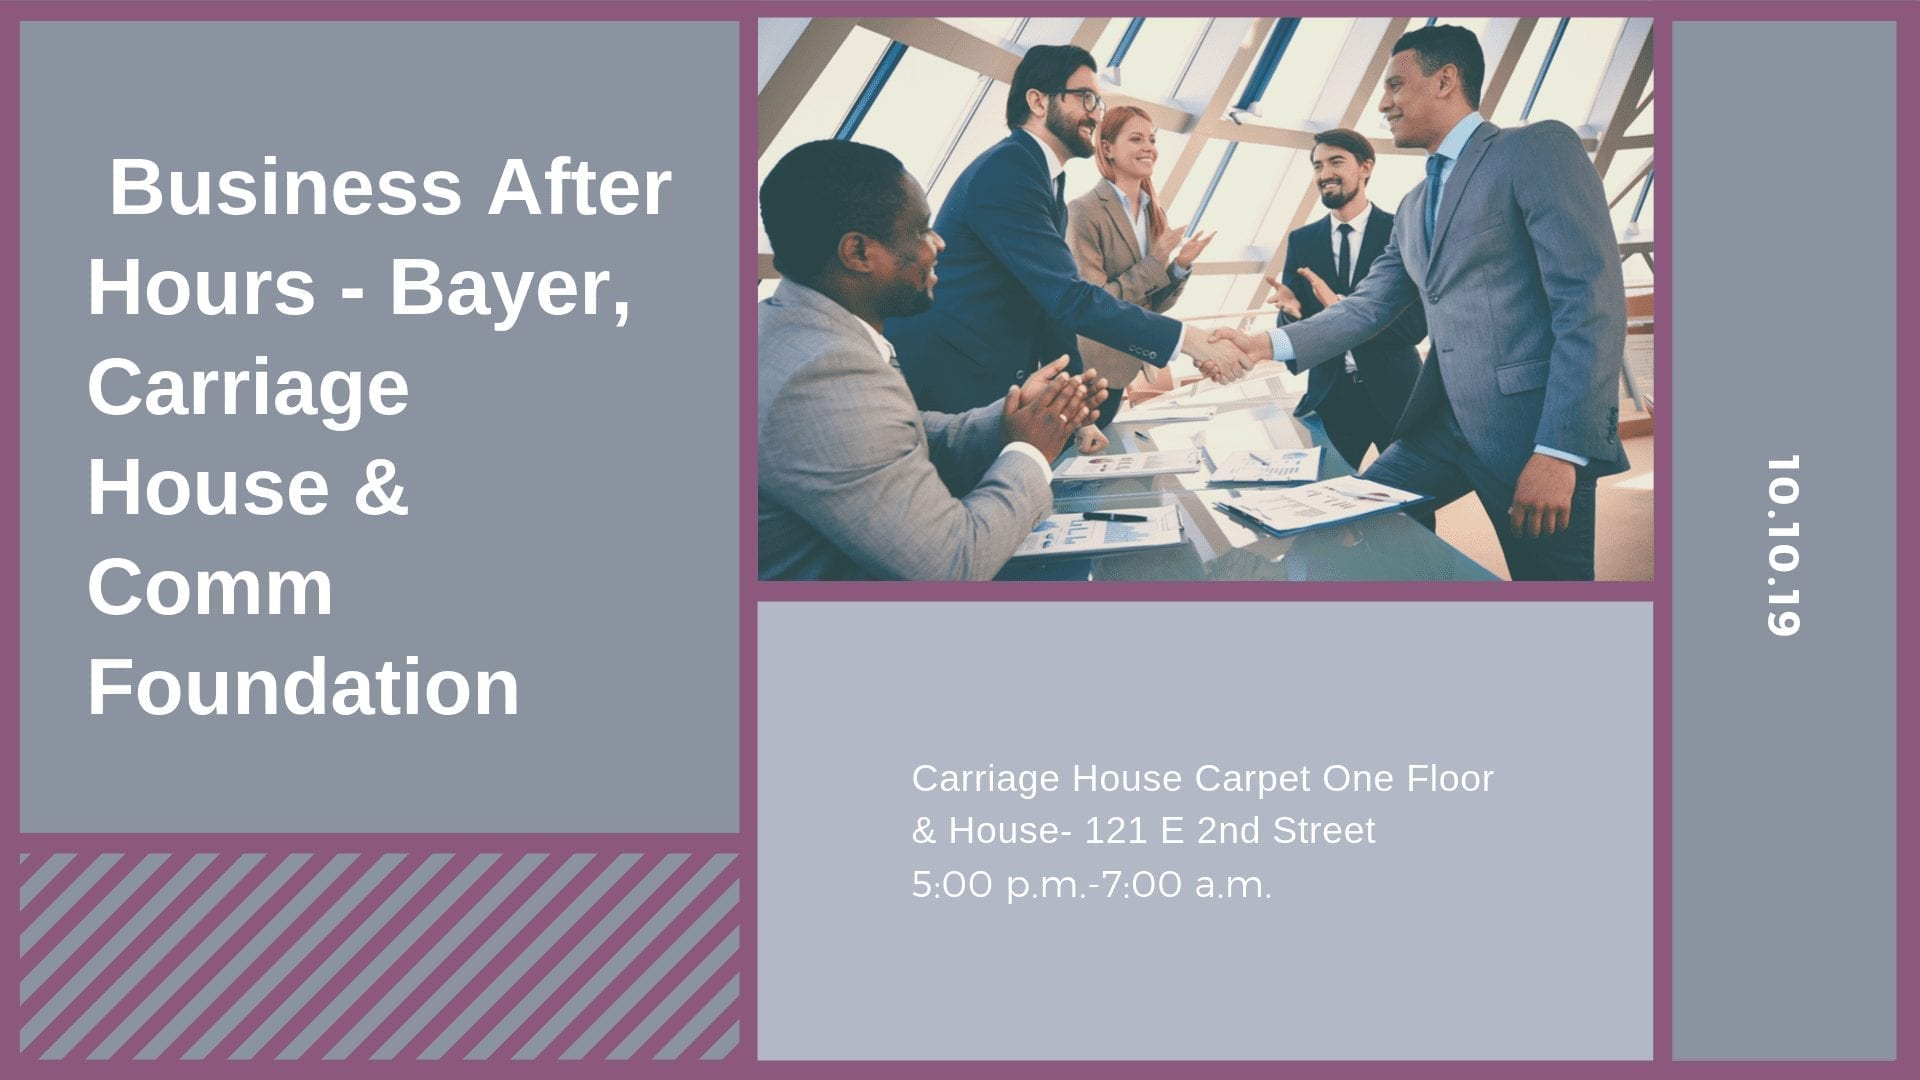 Business After Hours - Bayer, Carriage House & Comm Foundation